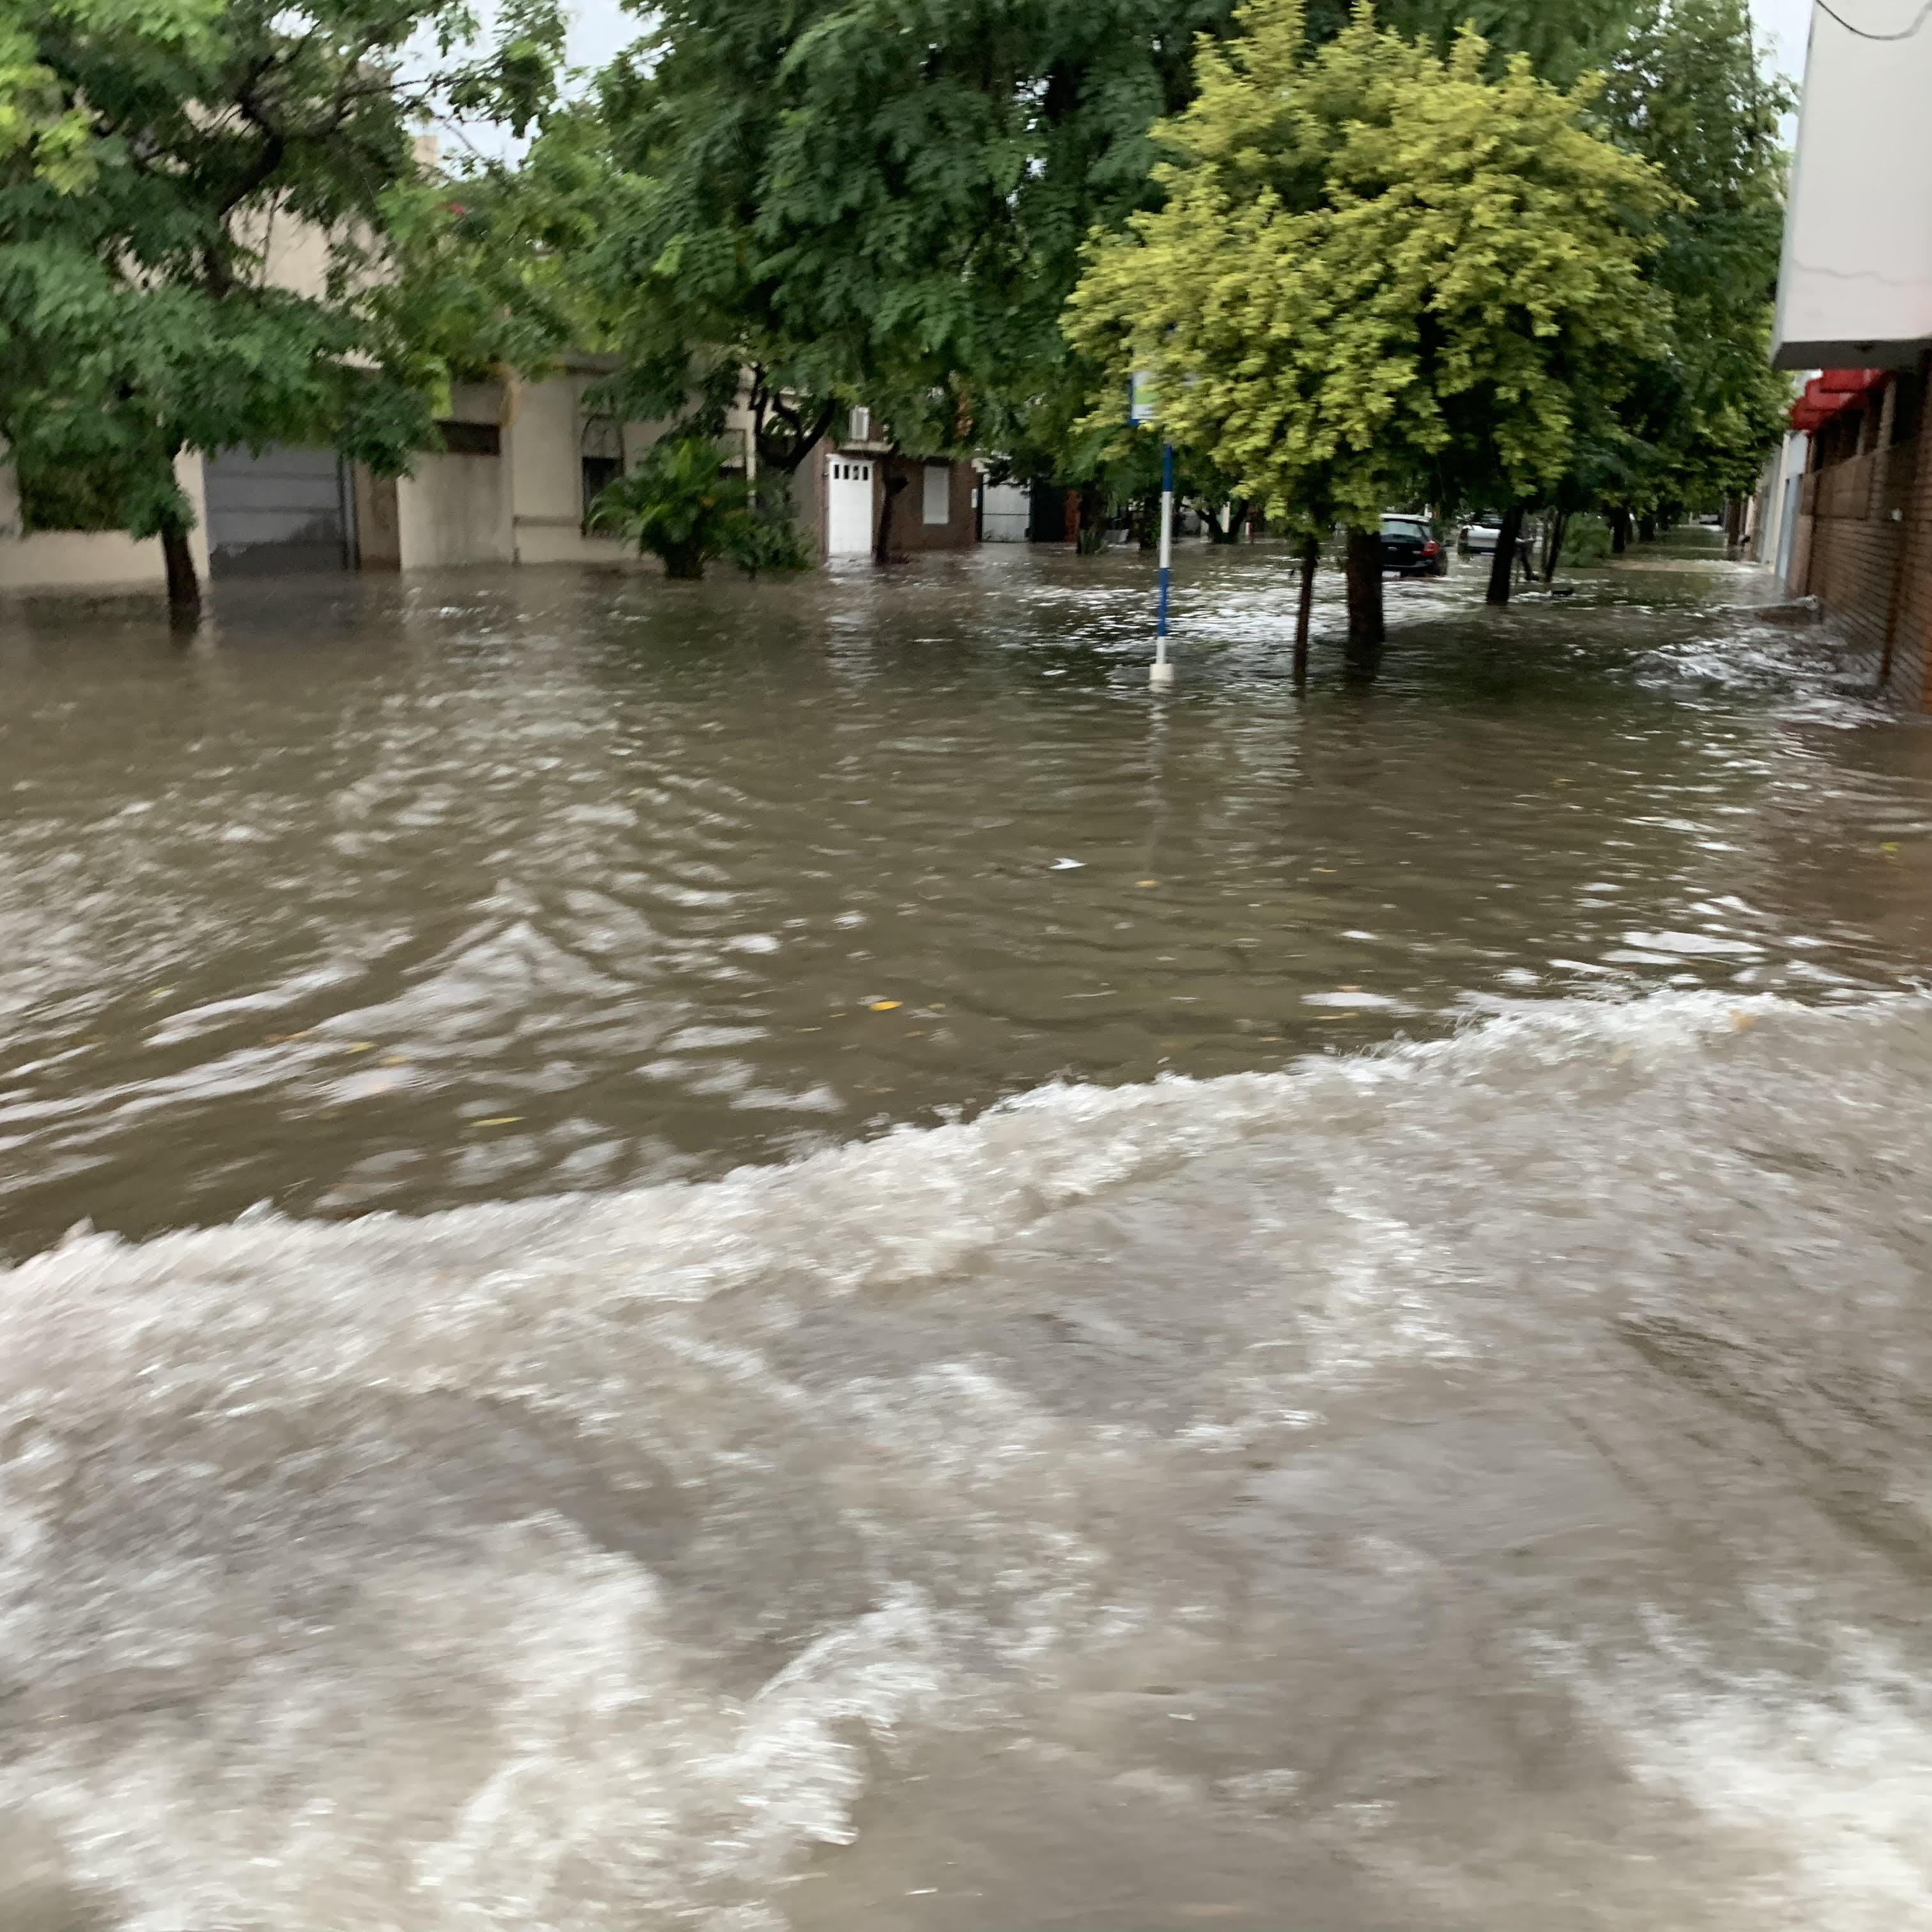 Rains caused flooding in the streets in Resistencia, Argentina, prior to a missionary meeting and stake conference with Elder Neil L. Andersen and Sister Kathy Andersen.